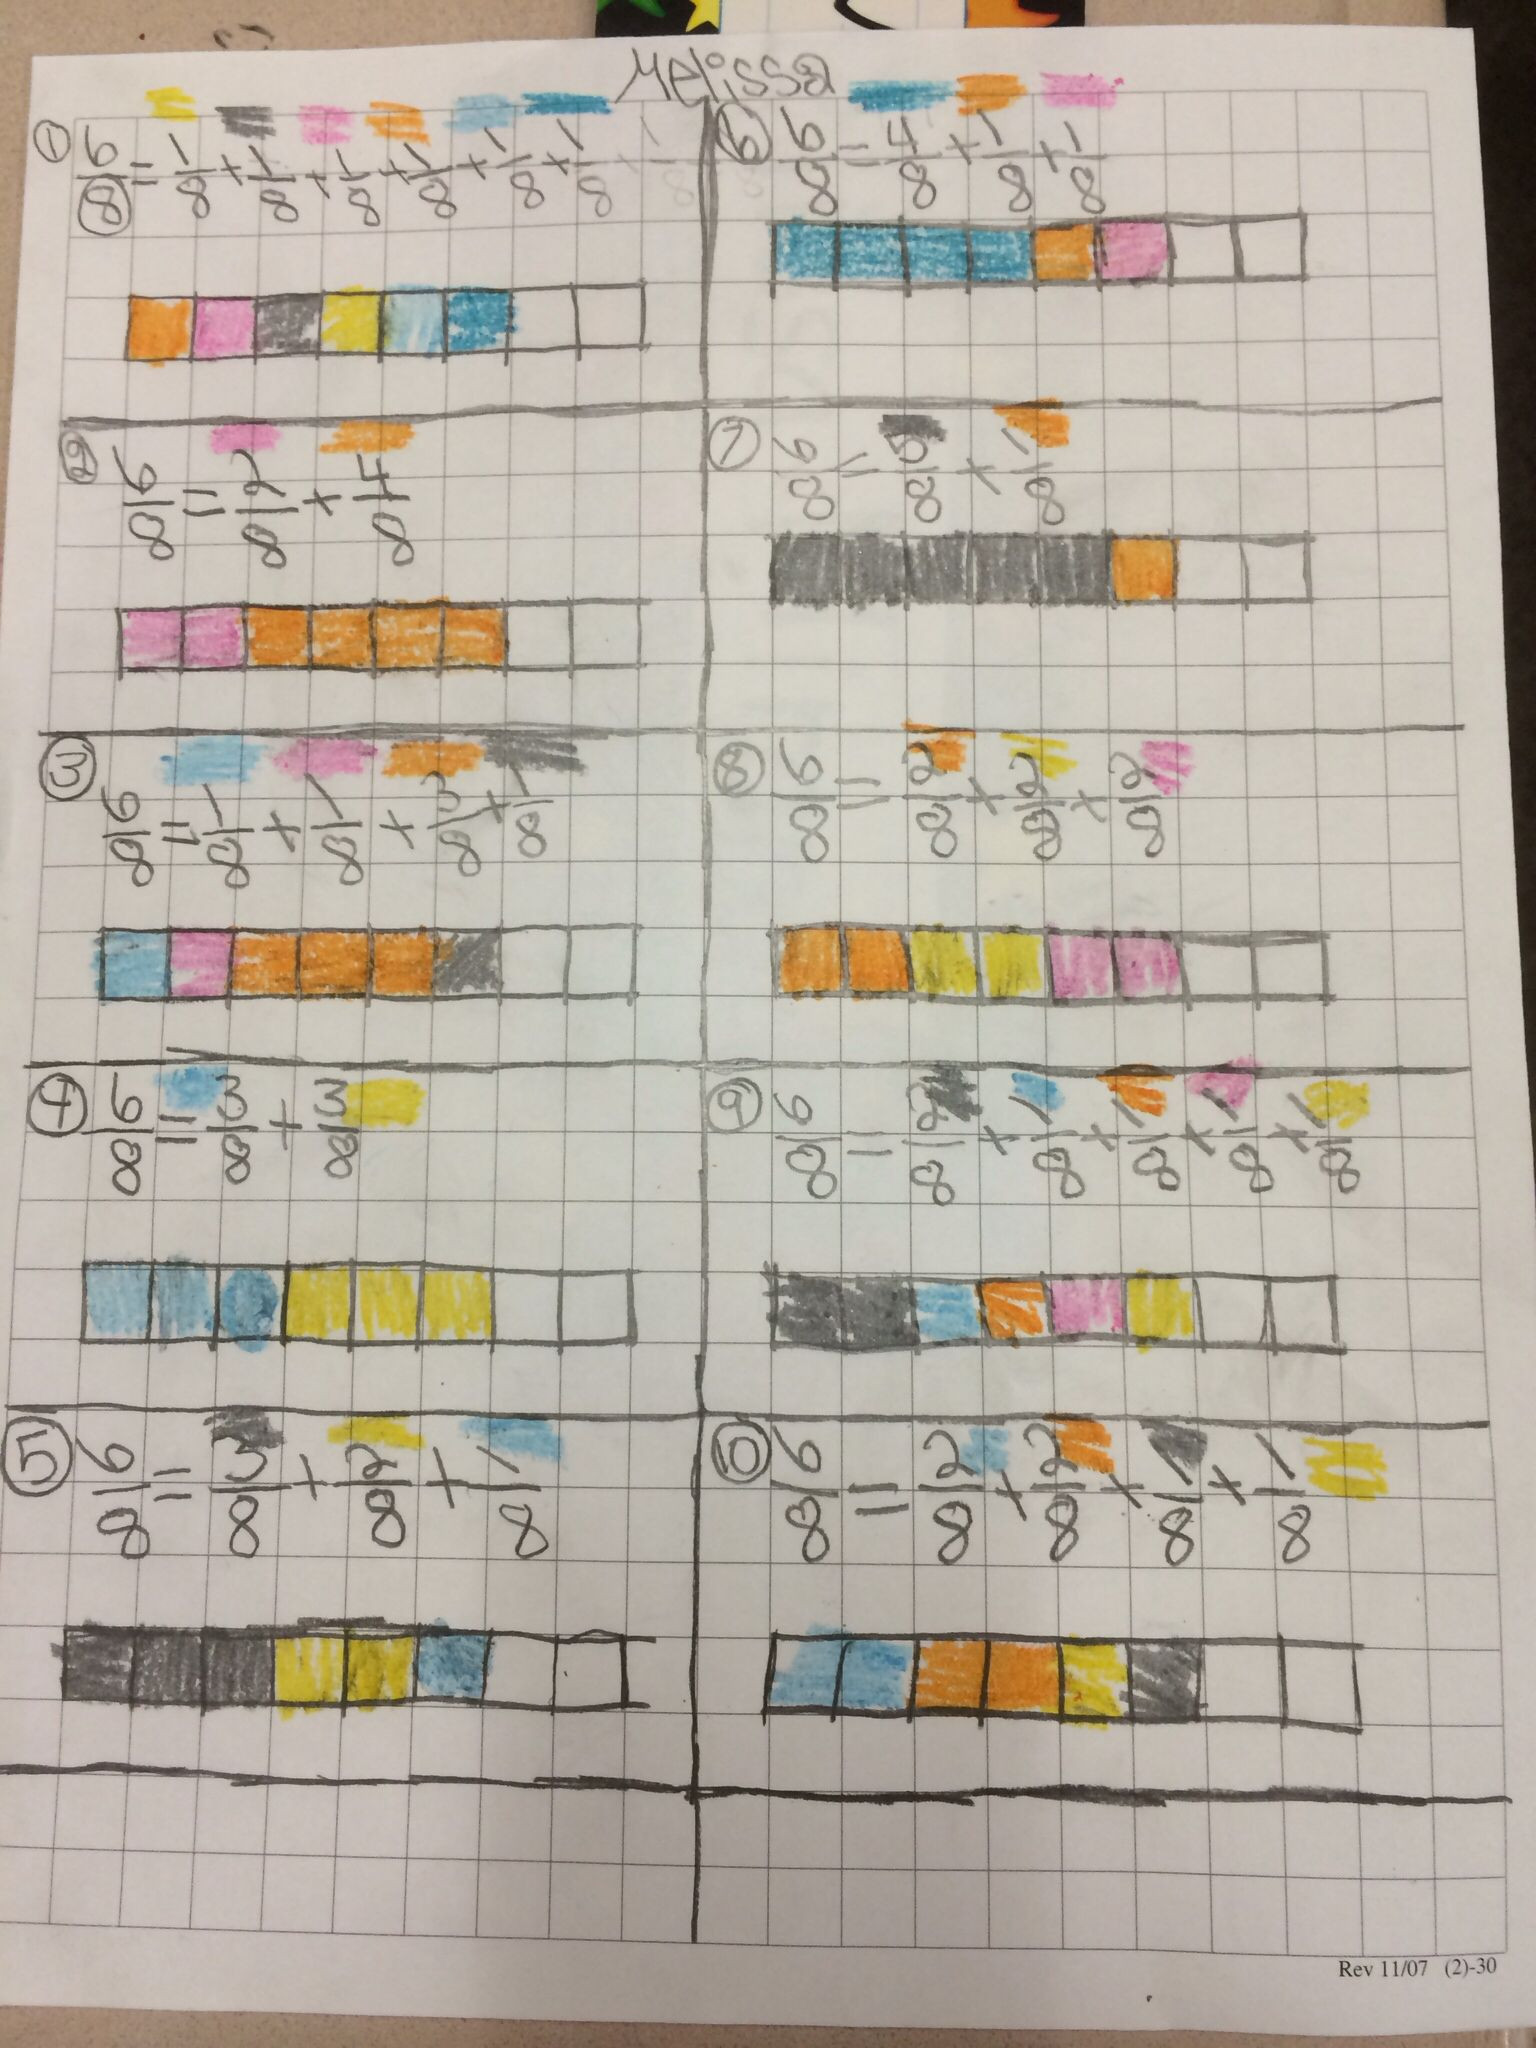 Decomposing Fractions Worksheets 4th Grade 4nf3 De Posing Fractions